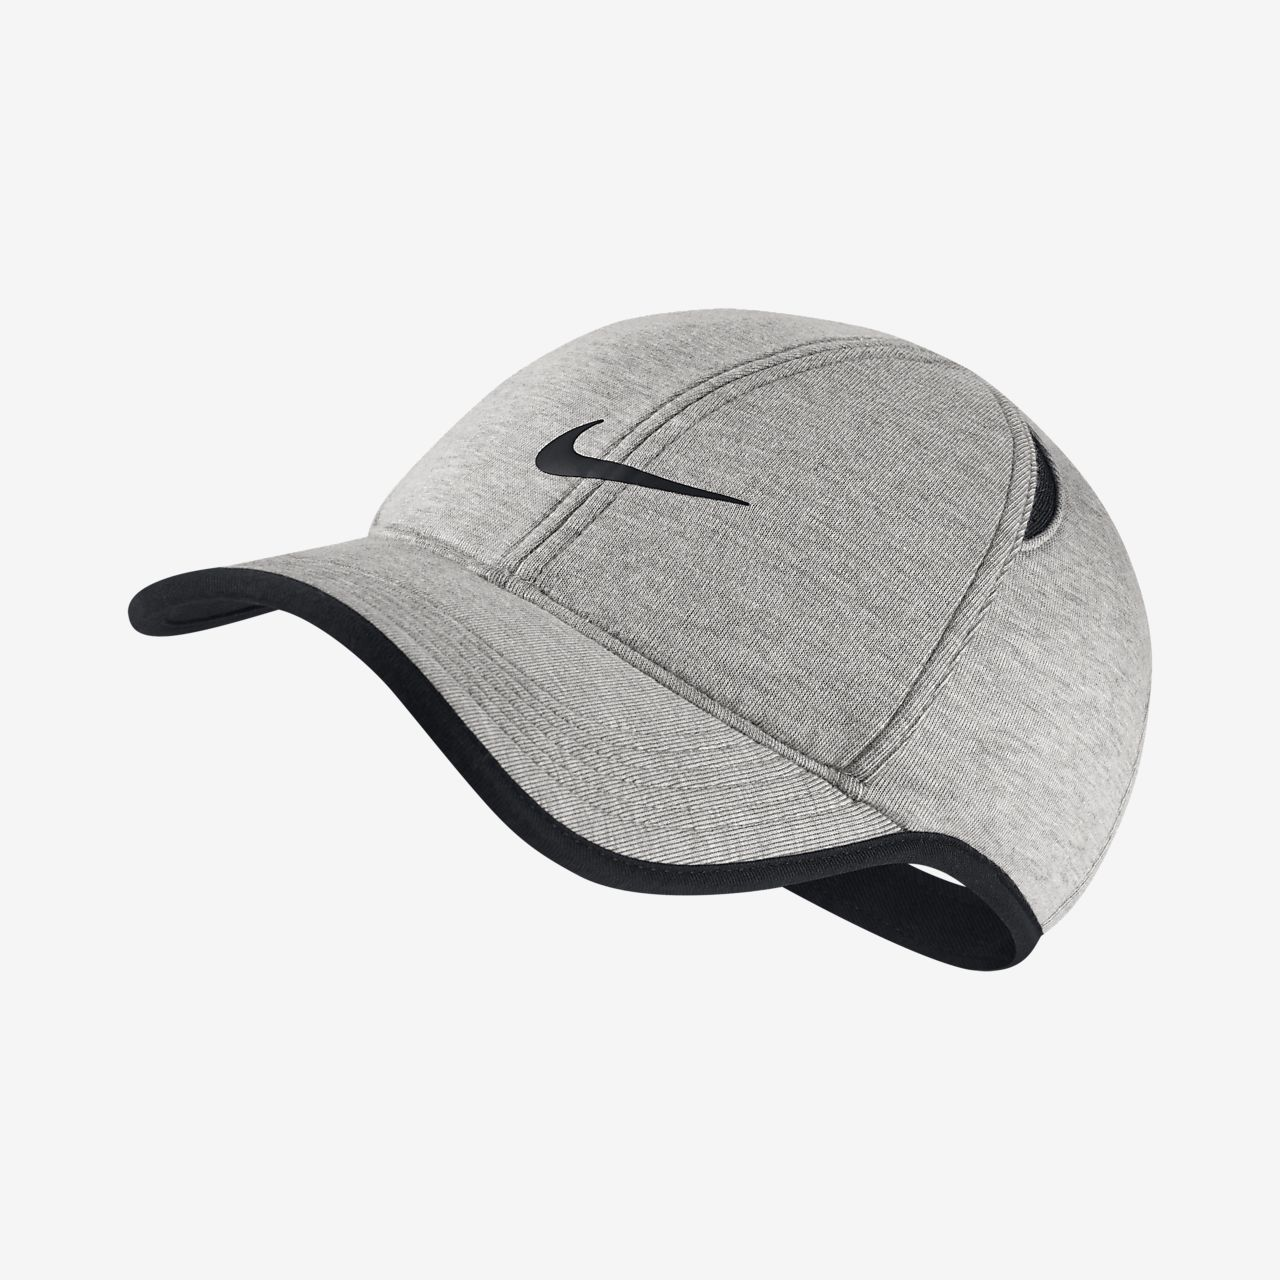 NikeCourt AeroBill Featherlight Adjustable Tennis Hat. Nike.com b2a9087b521